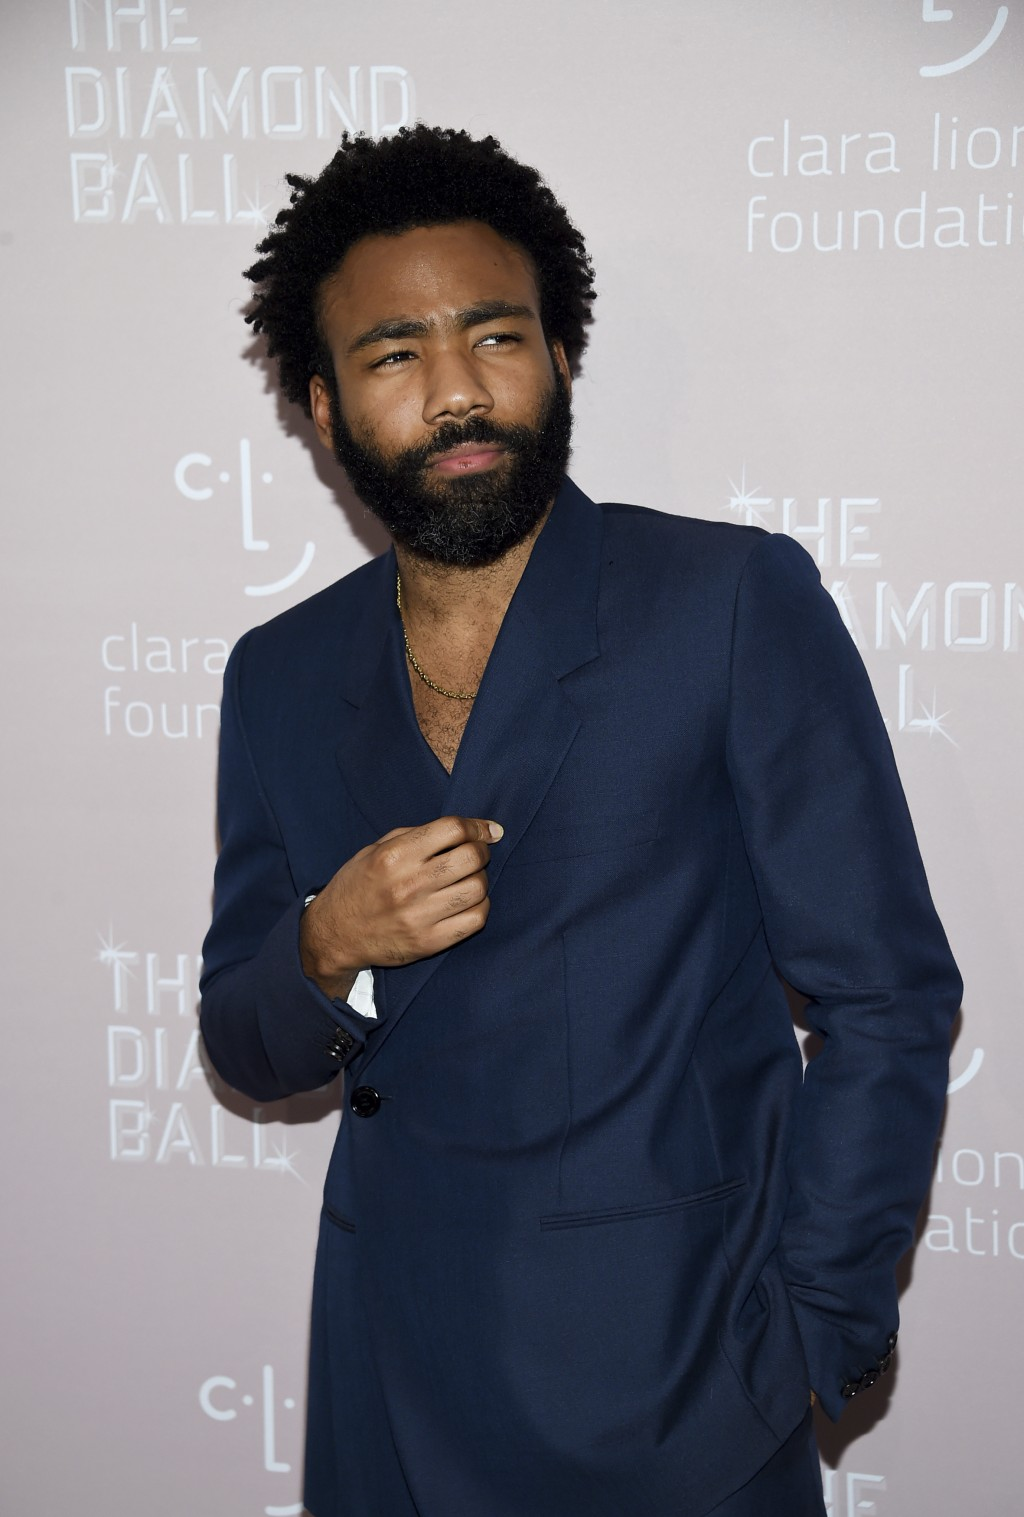 Actor/rapper Donald Glover aka Childish Gambino attends the 4th annual Diamond Ball at Cipriani Wall Street on Thursday, Sept. 13, 2018, in New York. ...